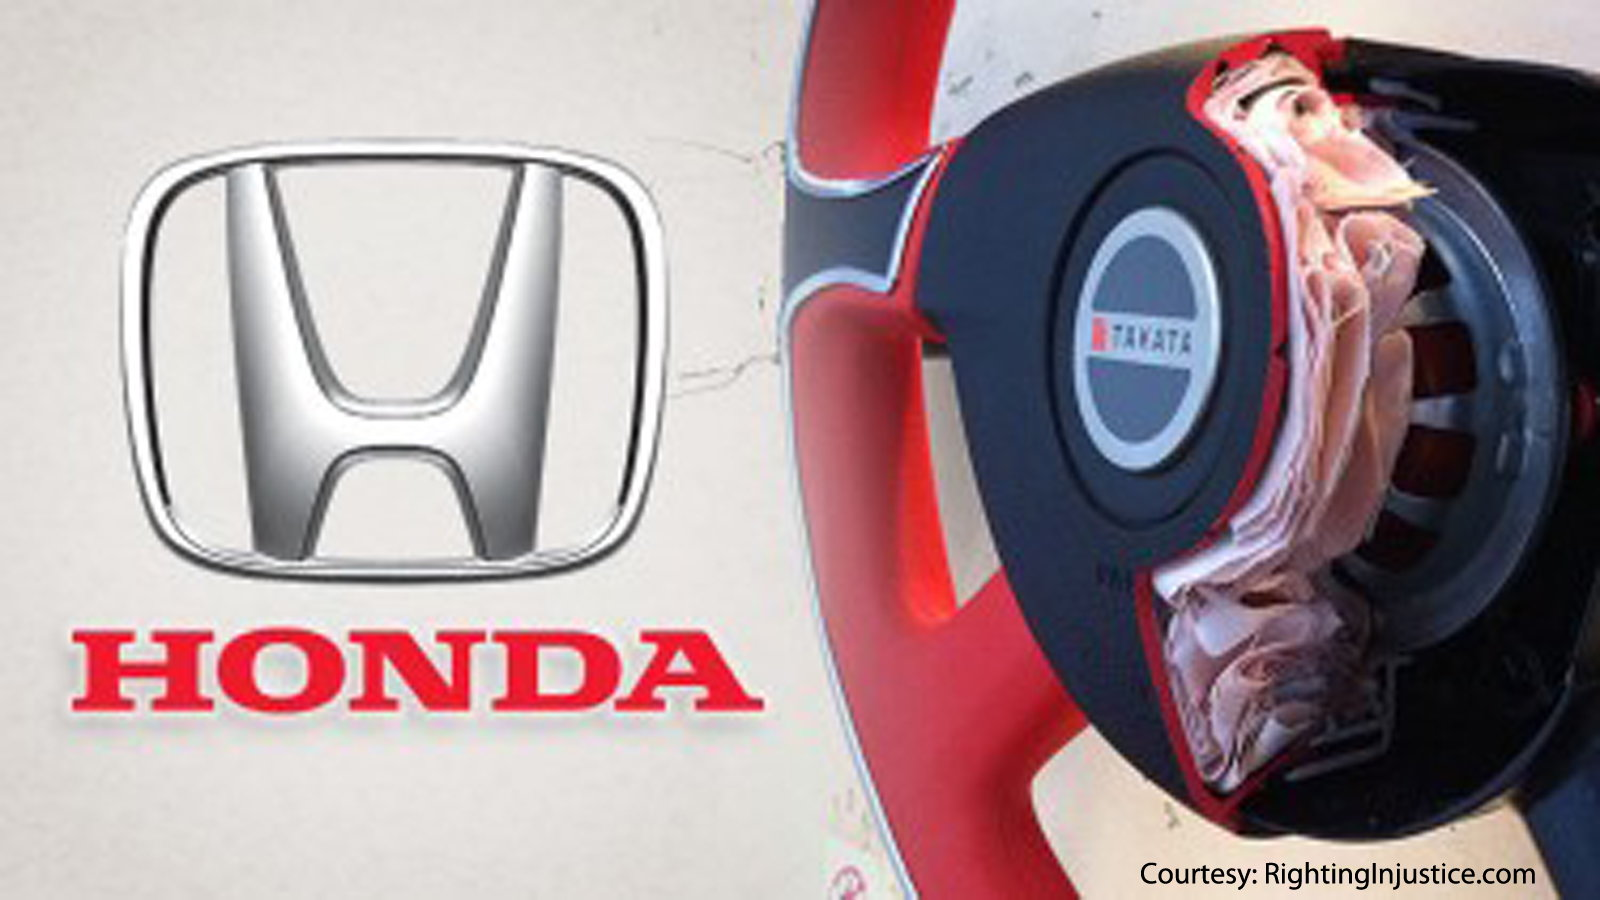 Honda Knew About the Airbags